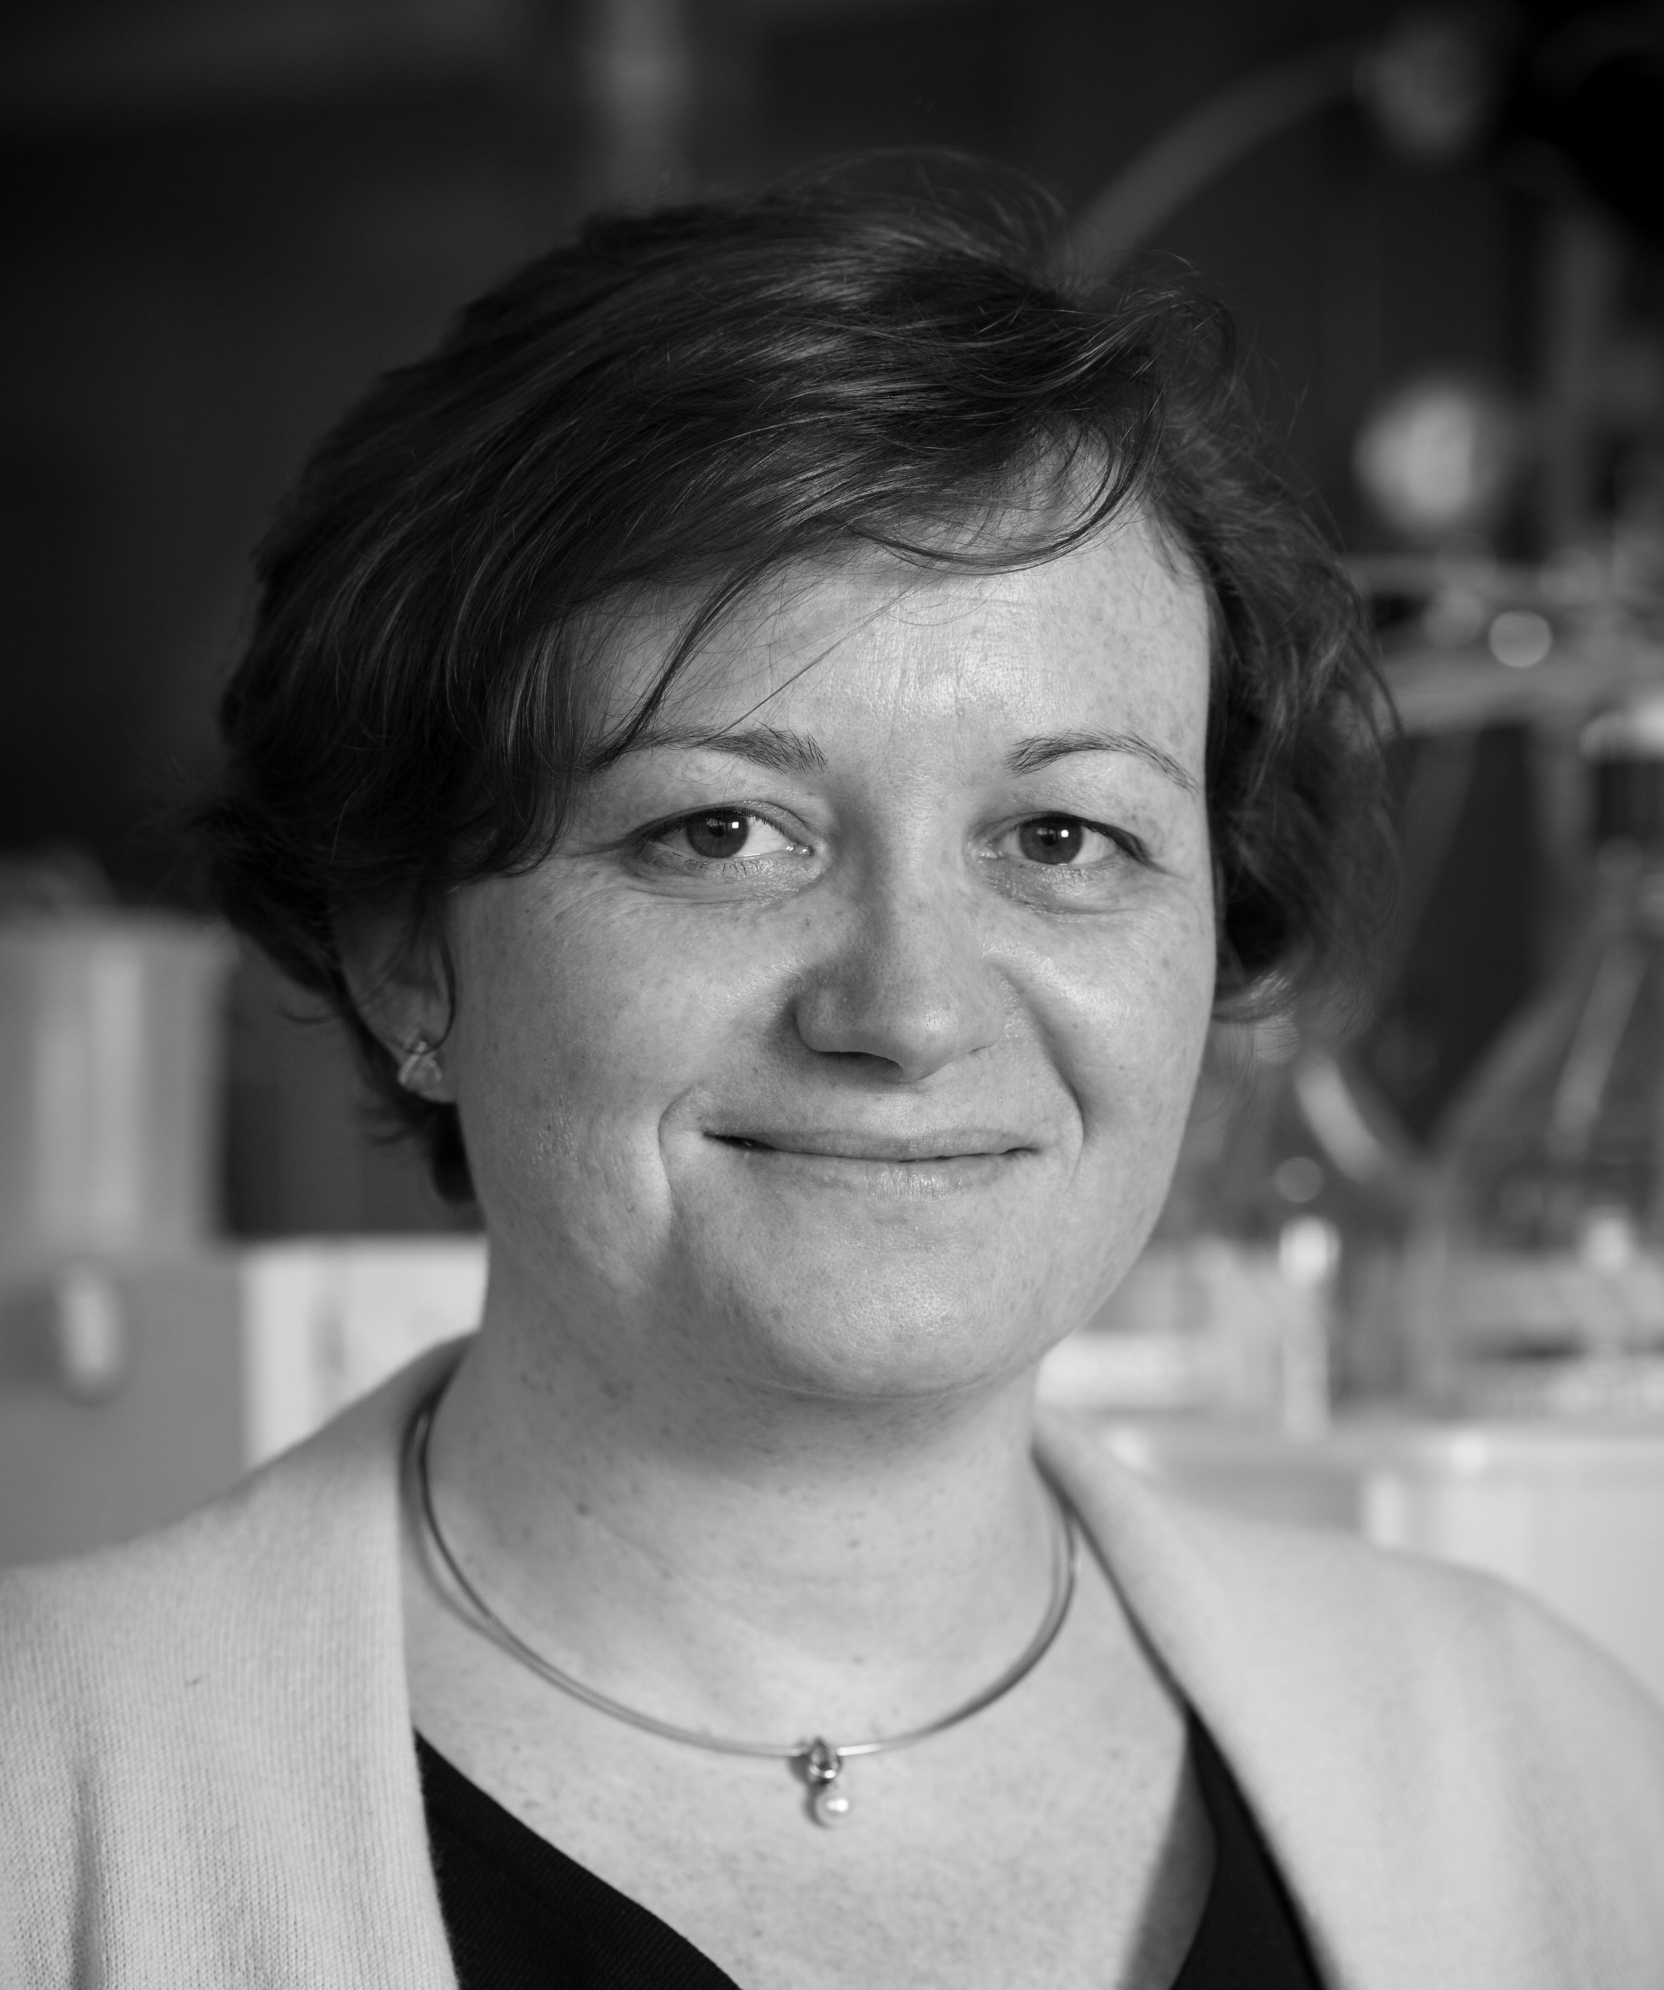 Marjan De Mey - Marjan De Mey is a professor of Metabolic Engineering and head of the Metabolic Engineering Group at the Centre of Synthetic Biology (CSB). Her expertise lies in industrial biotechnology, metabolic engineering, and synthetic biology.